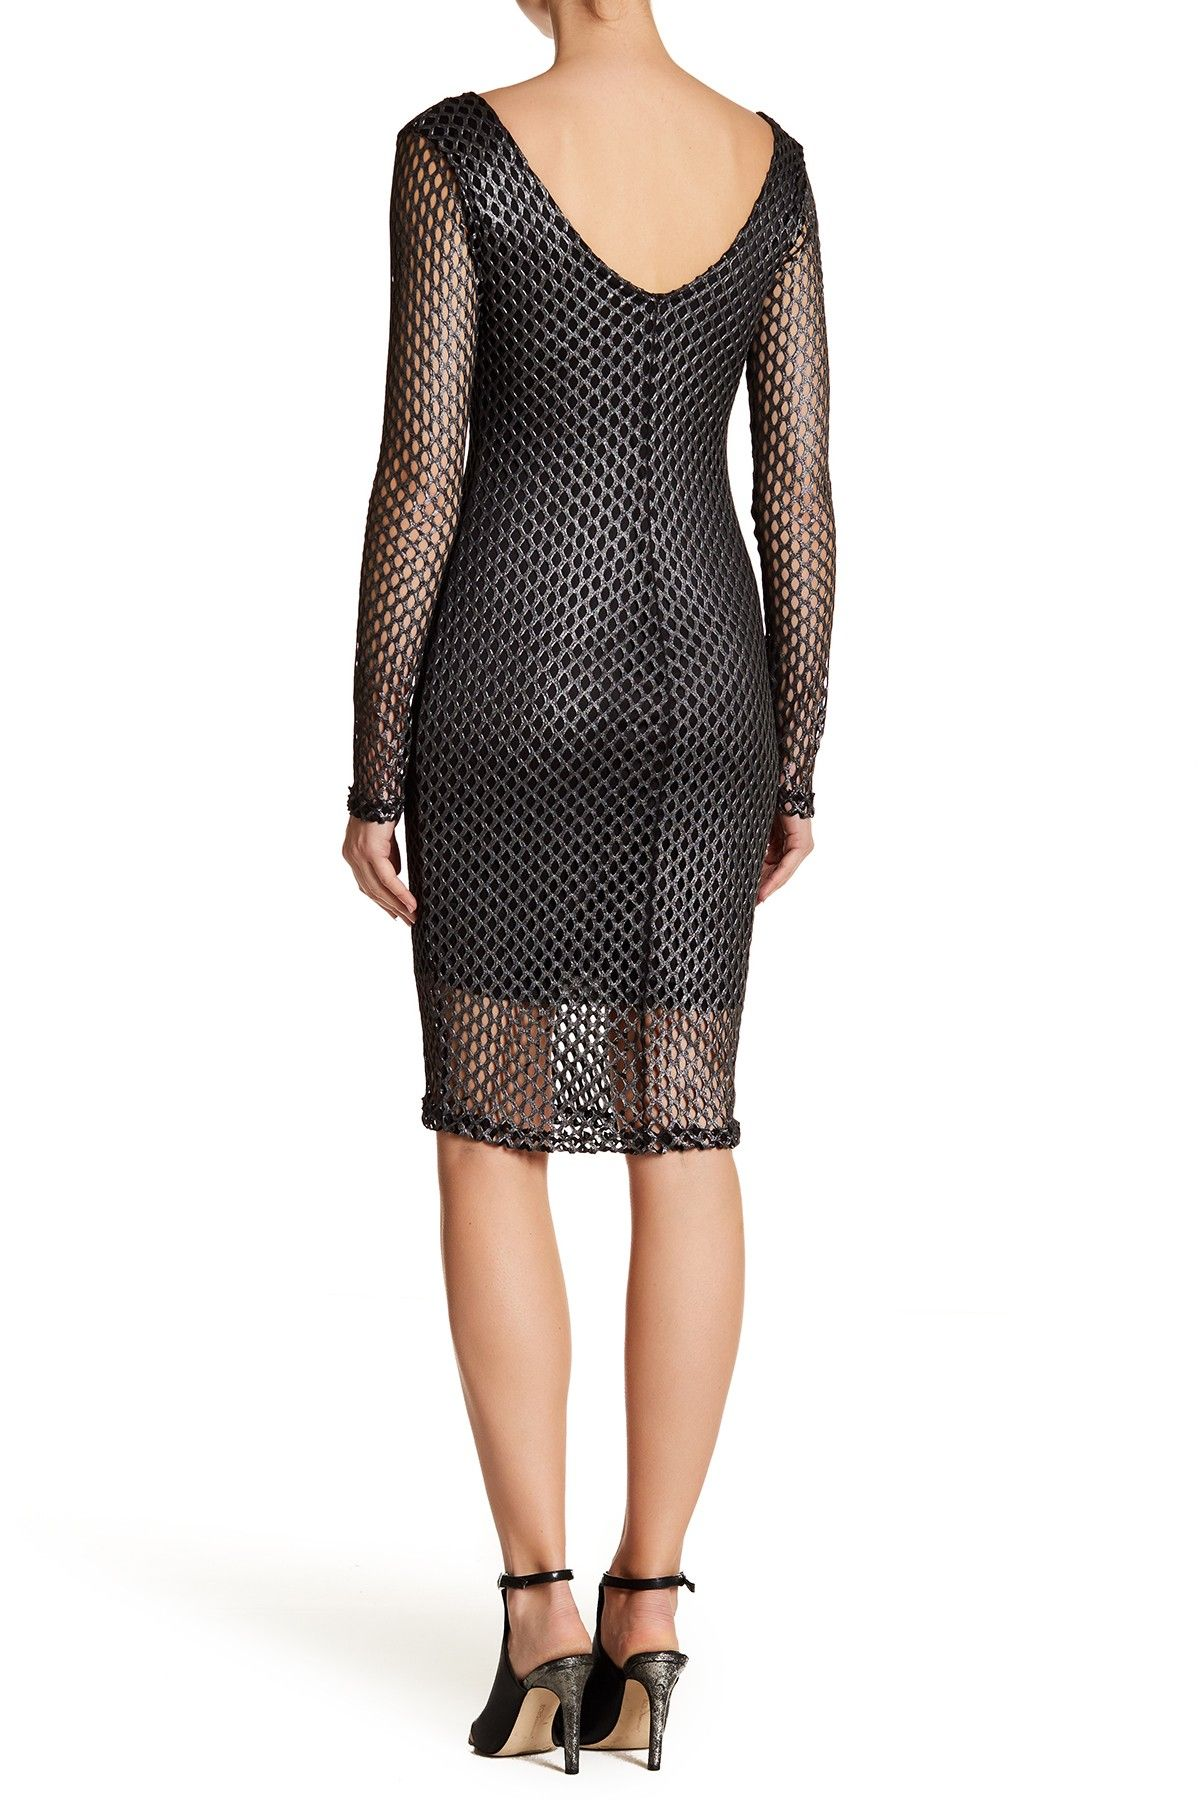 Classic Cut Mesh Dress by Sentimental on @HauteLook